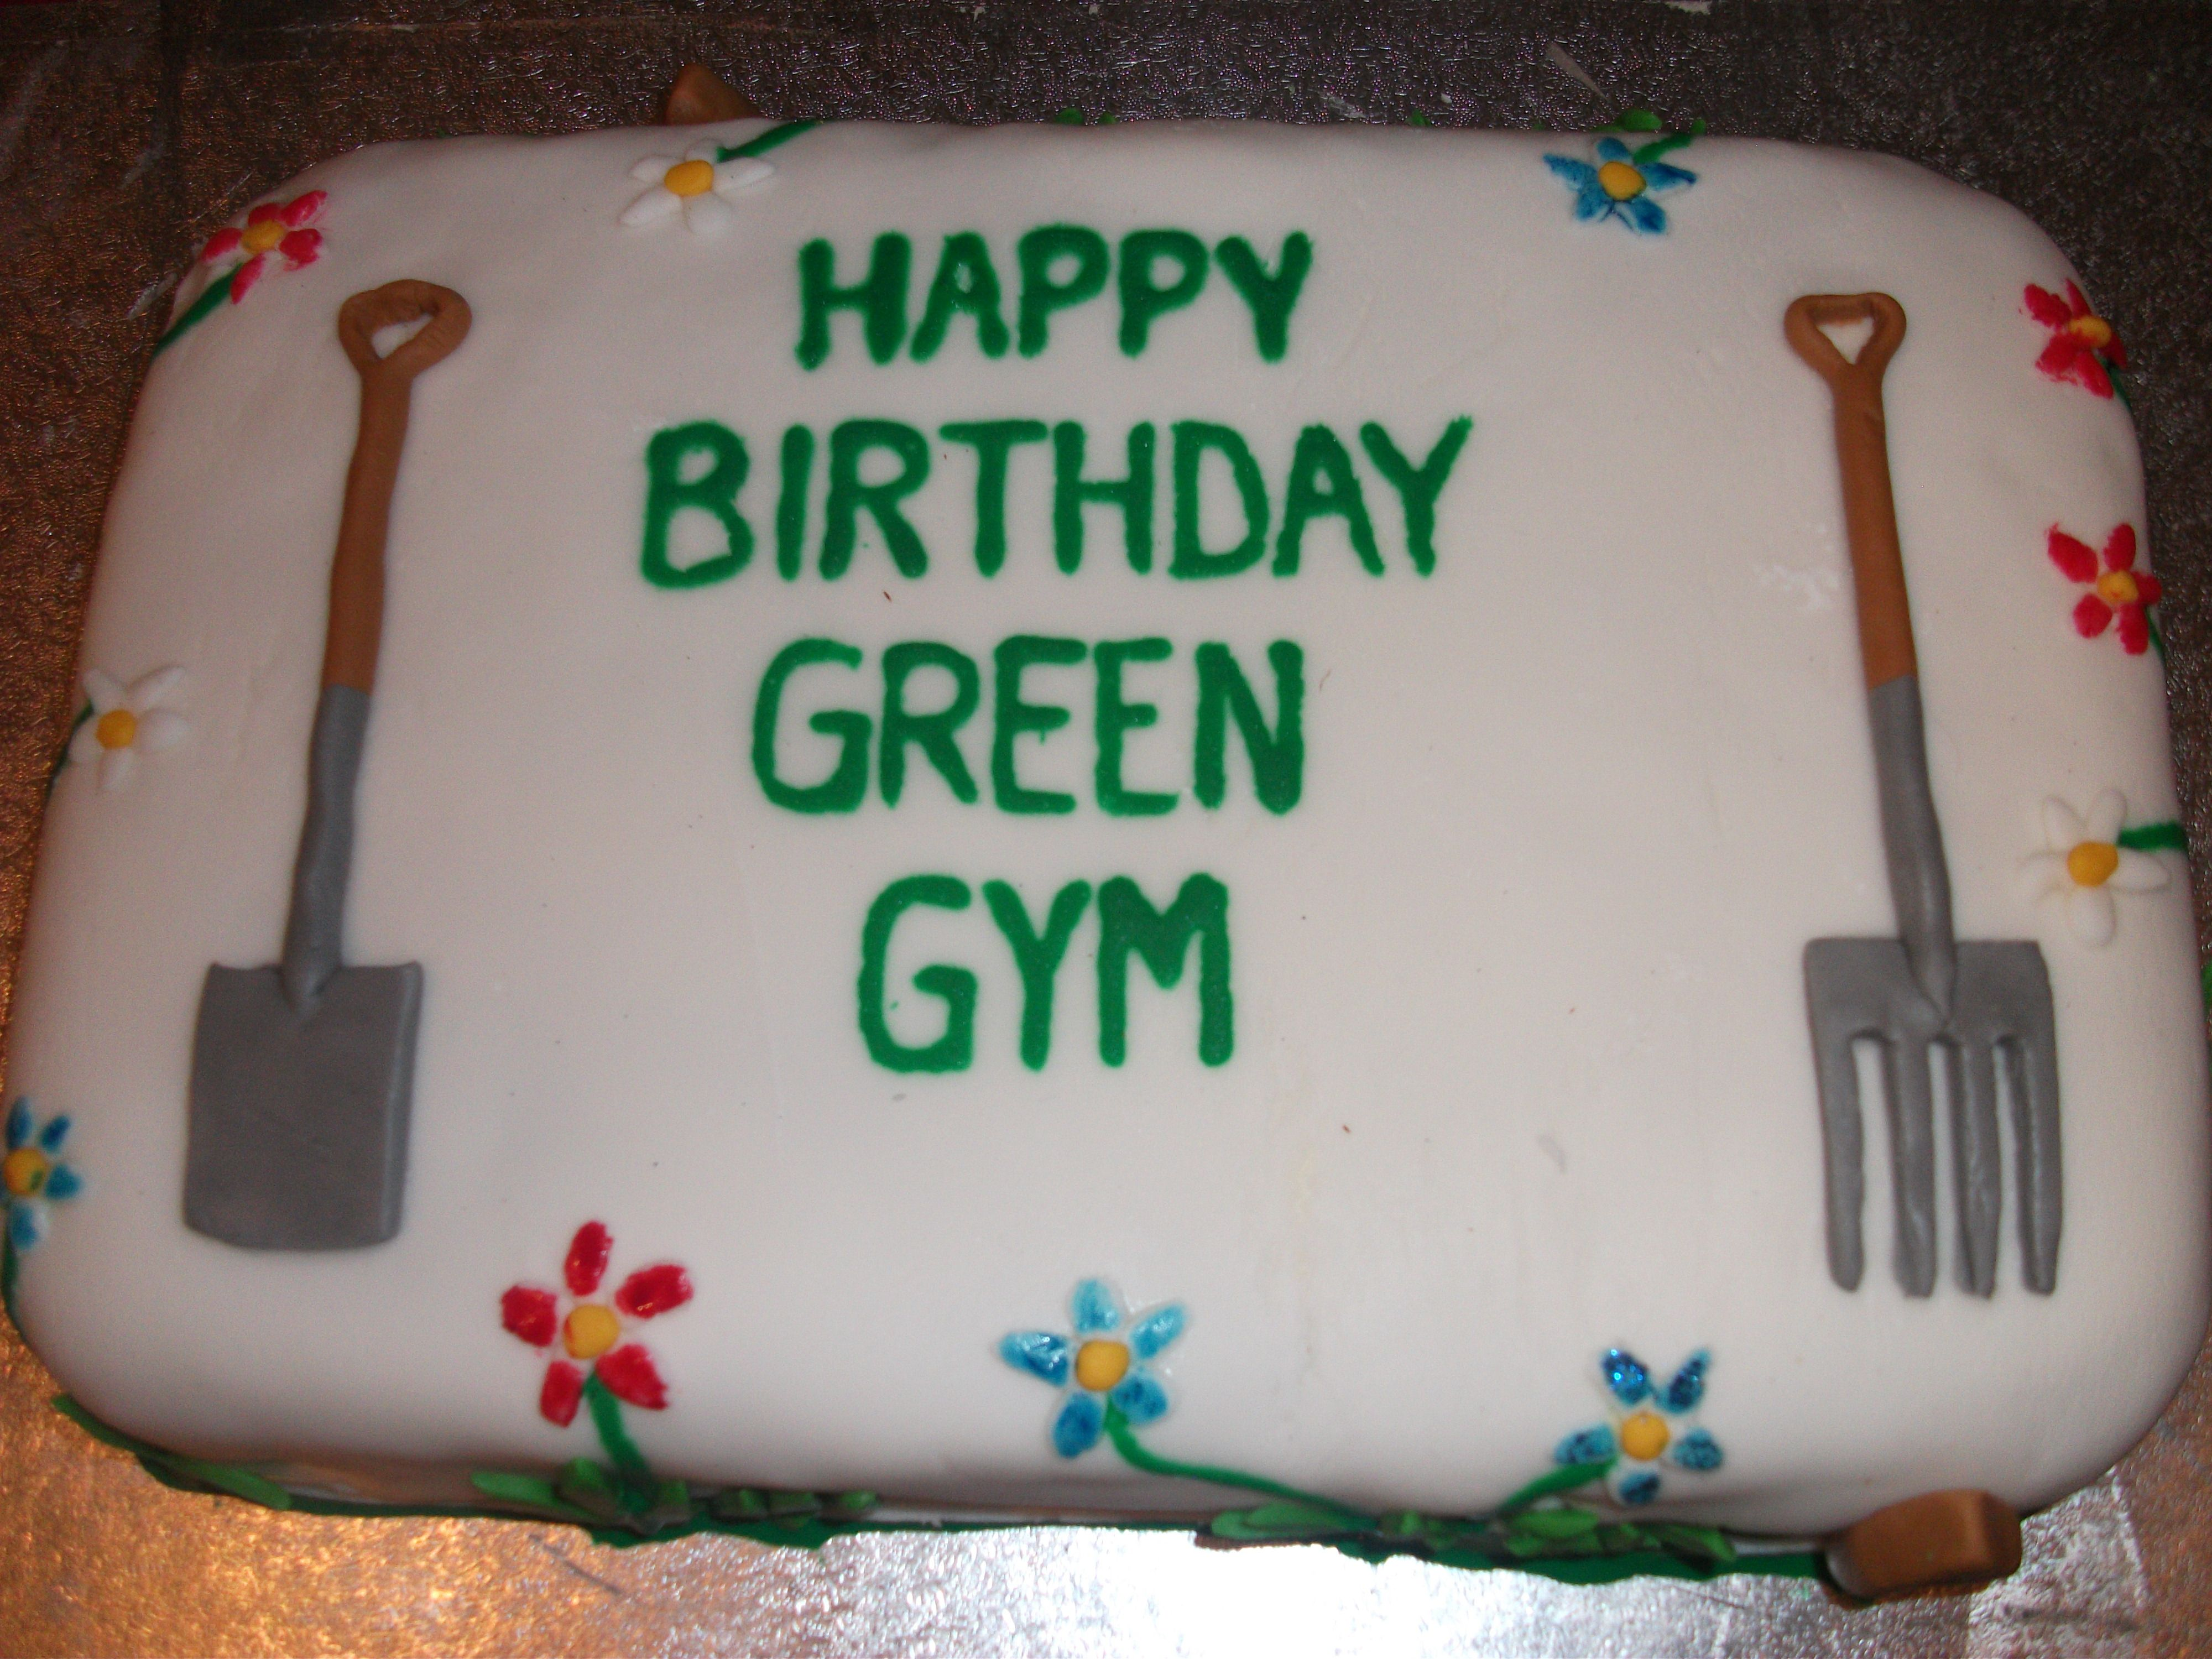 Cake for the Watford Green Gym - 2013